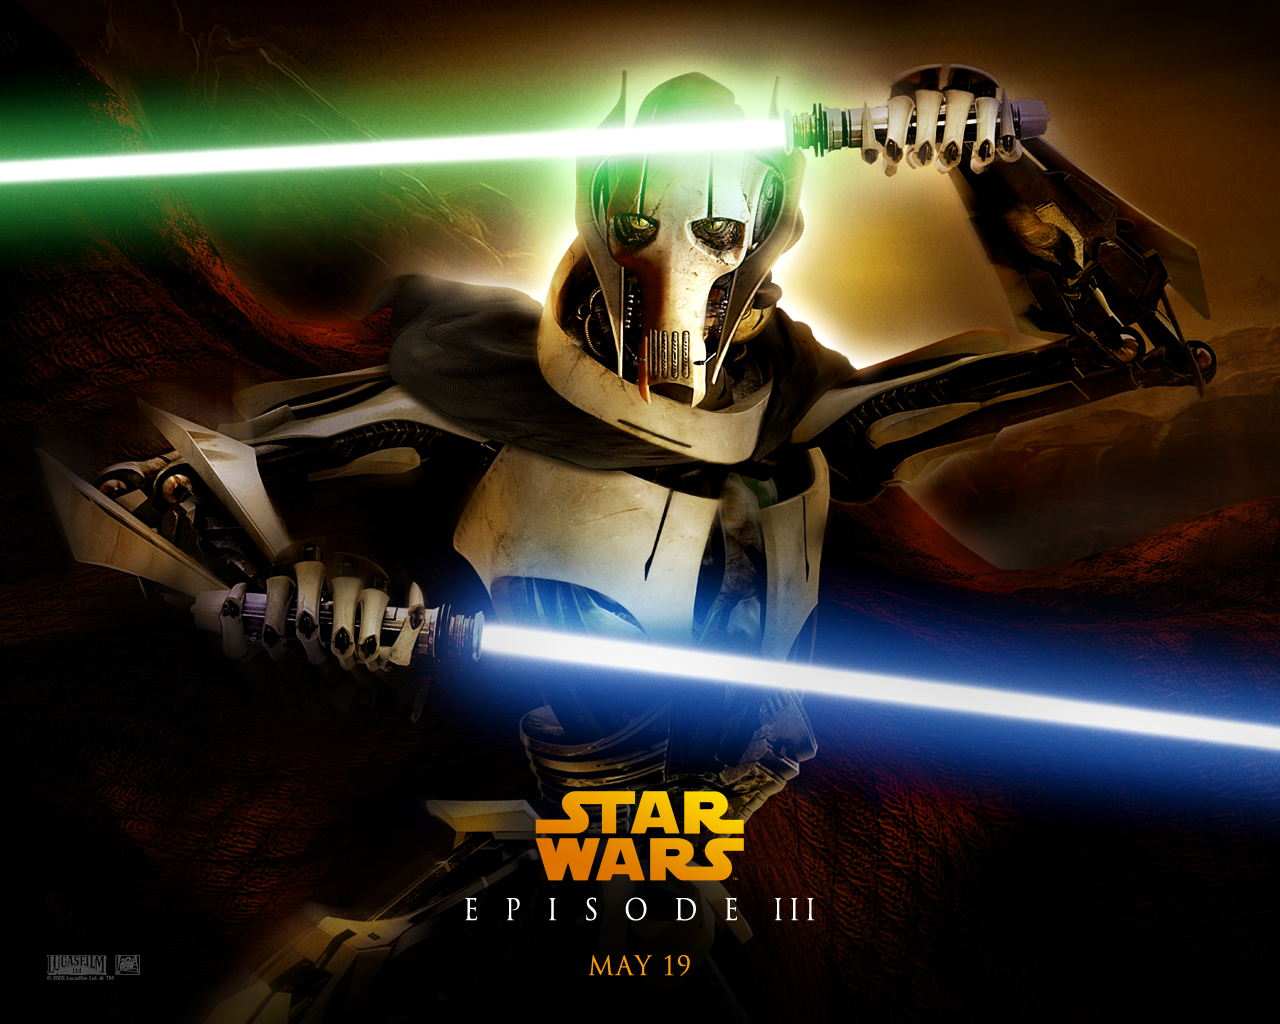 epic star wars wallpaper collection 144jpg 1280x1024